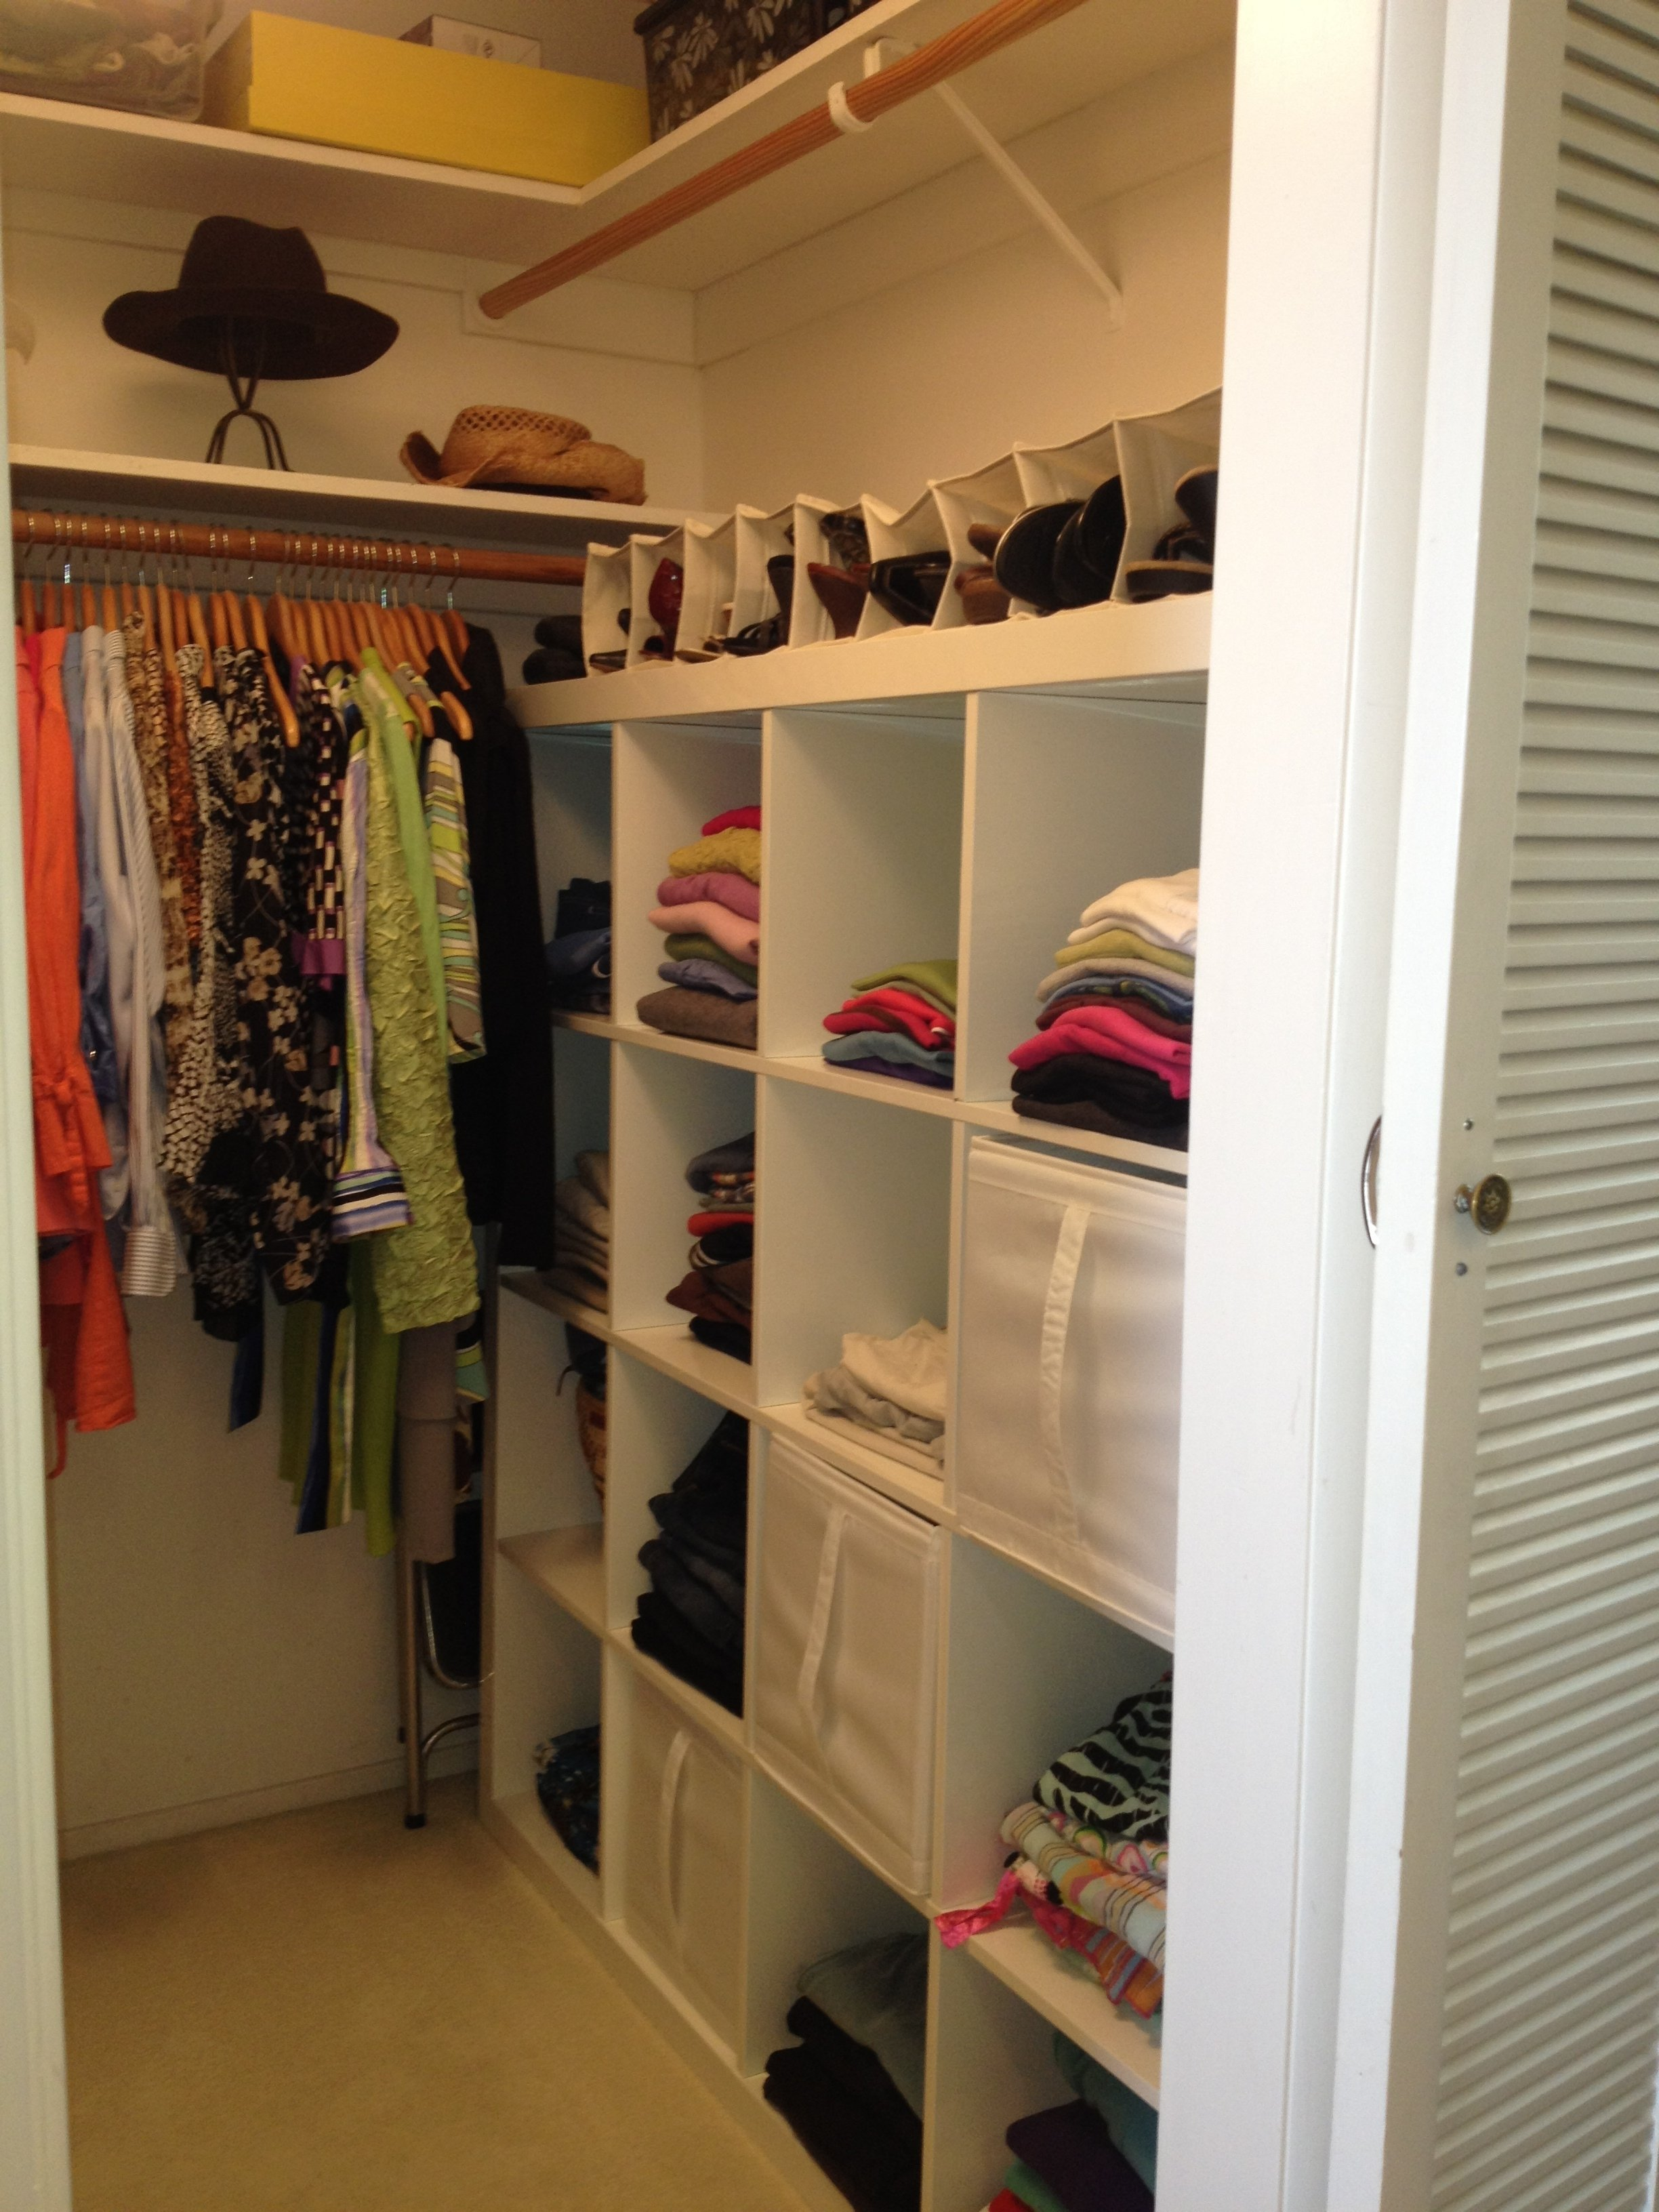 10 Amazing Walk In Closet Design Ideas elegant gallery of walk in closet design ideas 34140